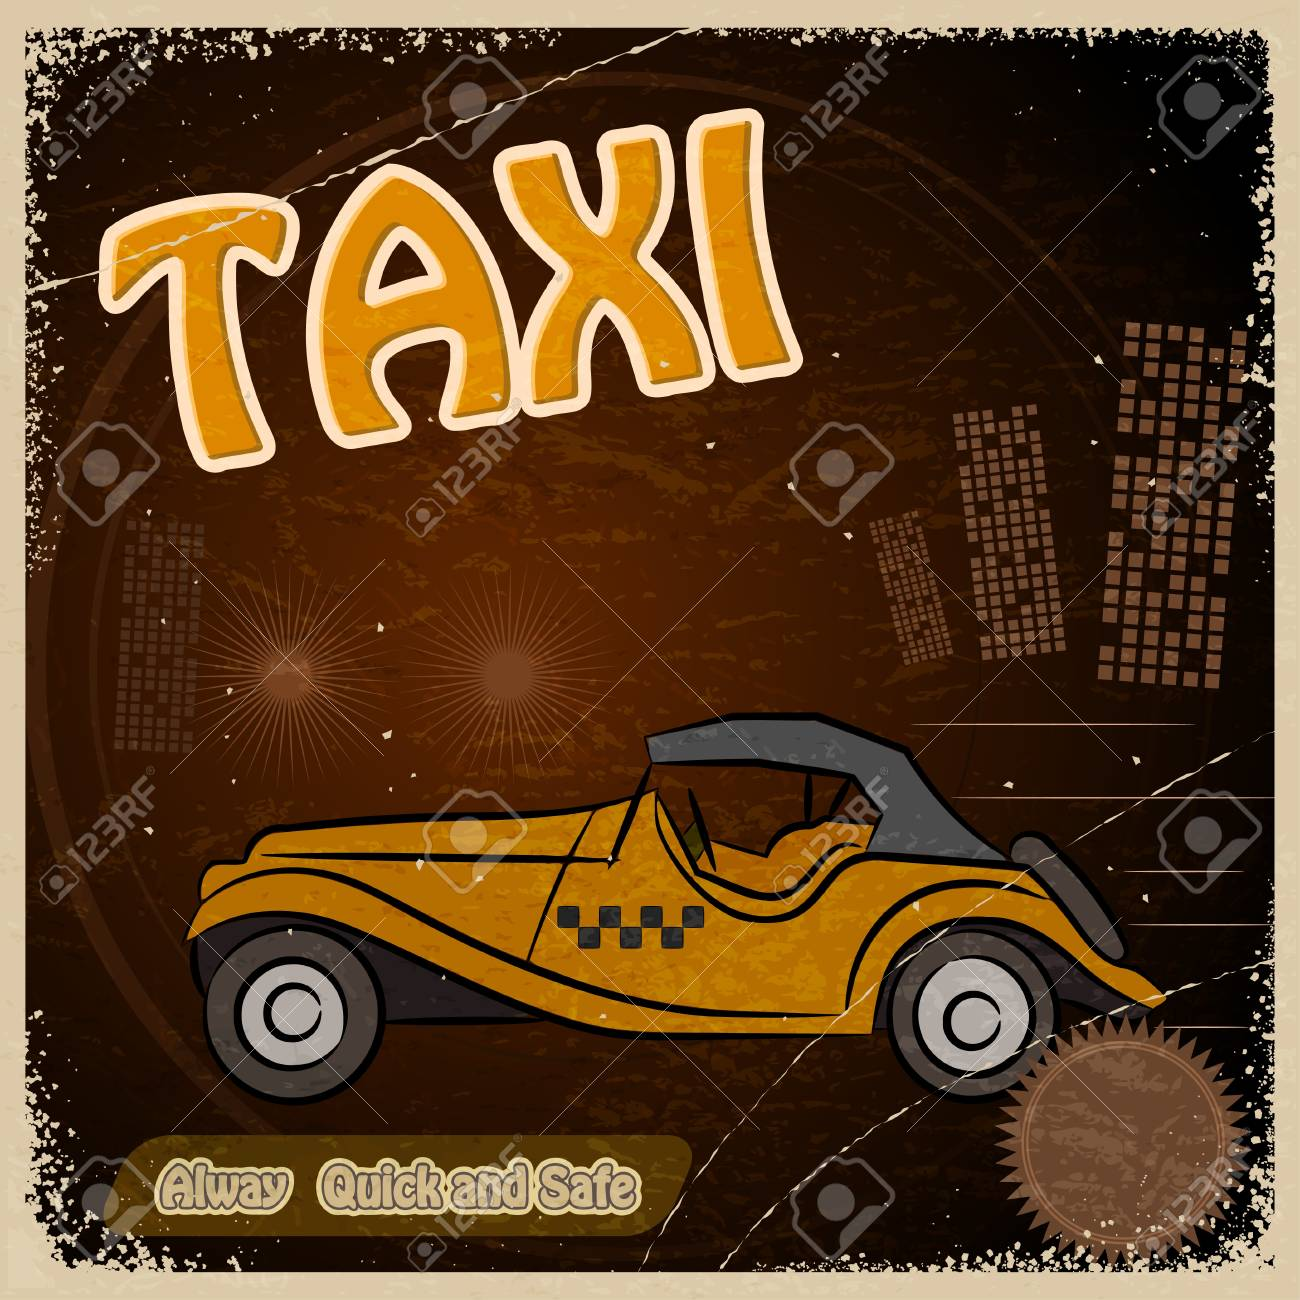 Vintage Postcard - Invitation to the trip - the image taxis Stock Vector - 17537061